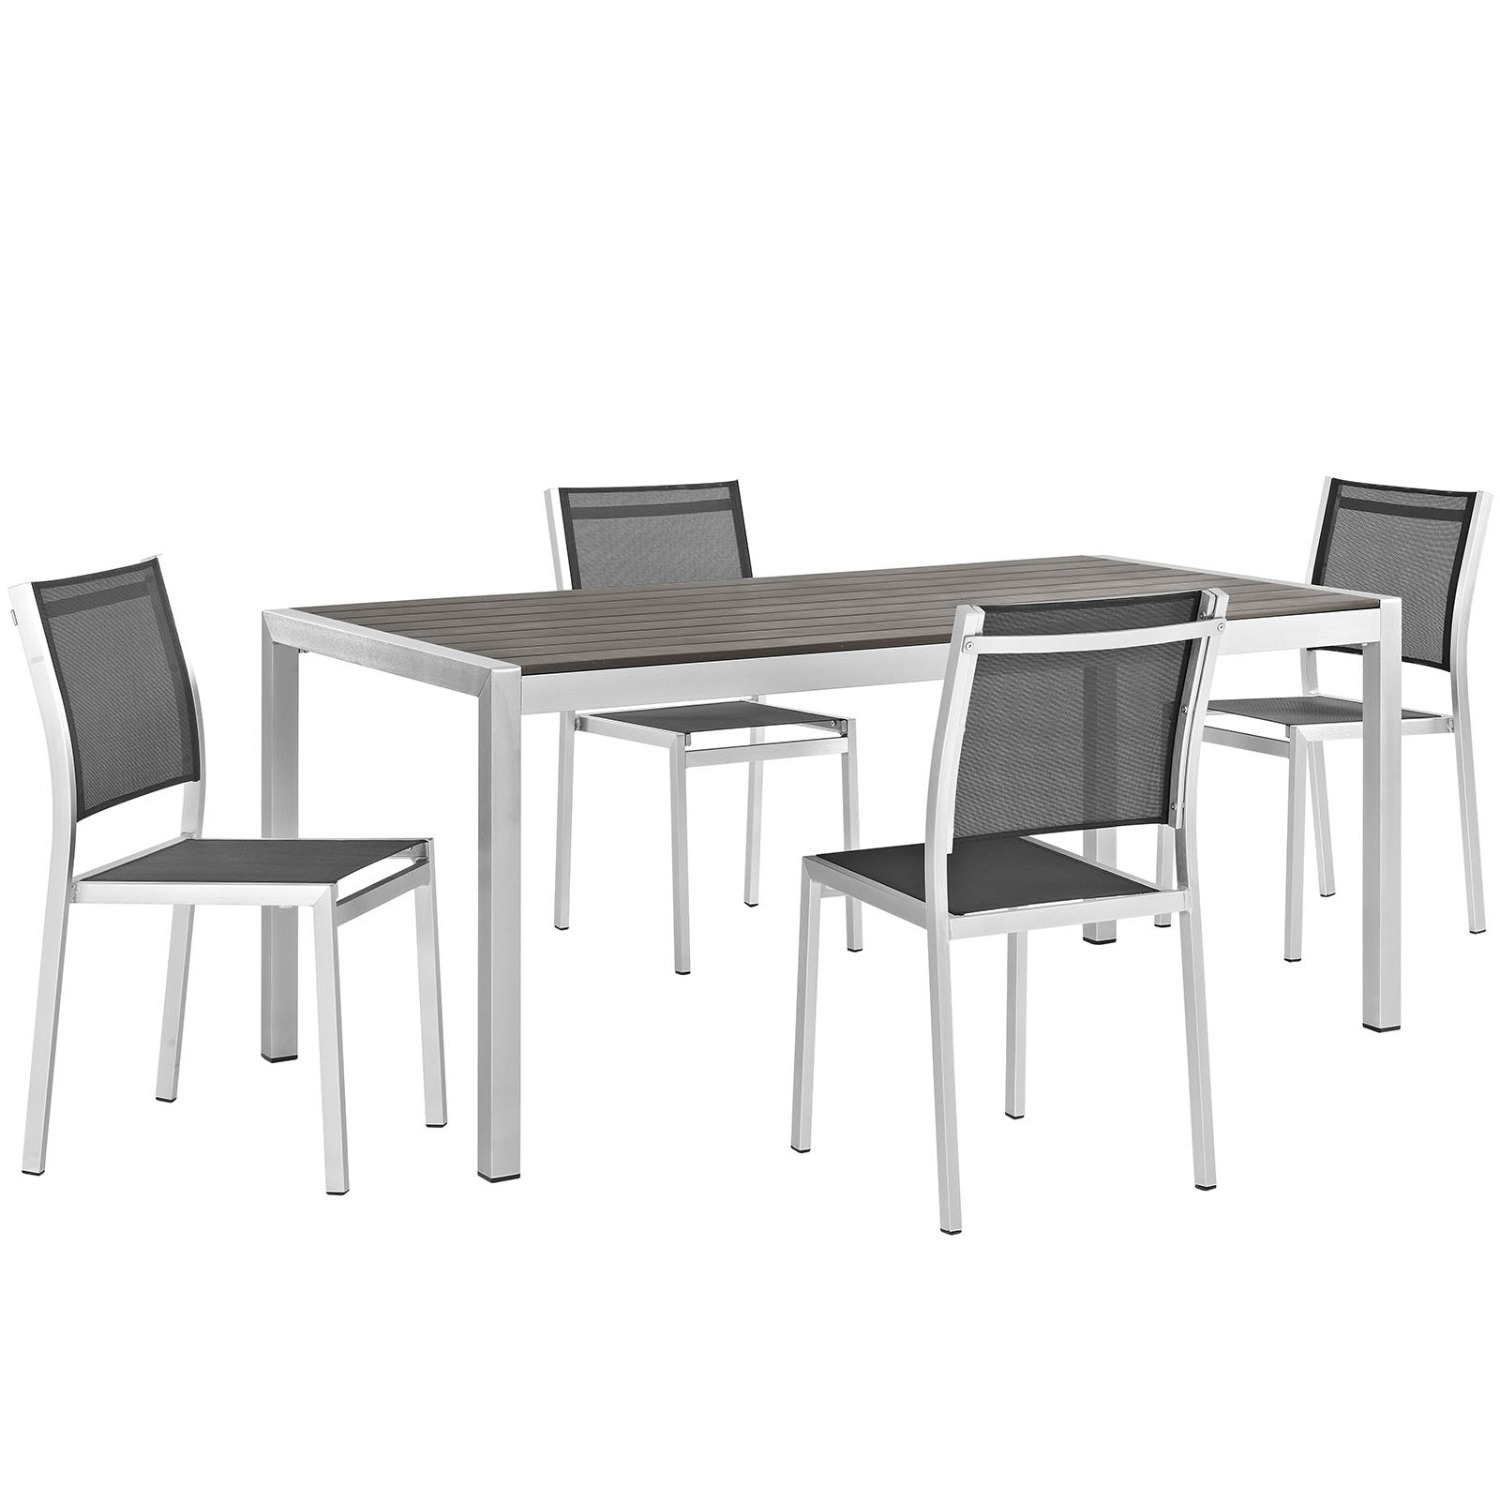 Modern 5-Piece Outdoor Dining Set In Black - image-0